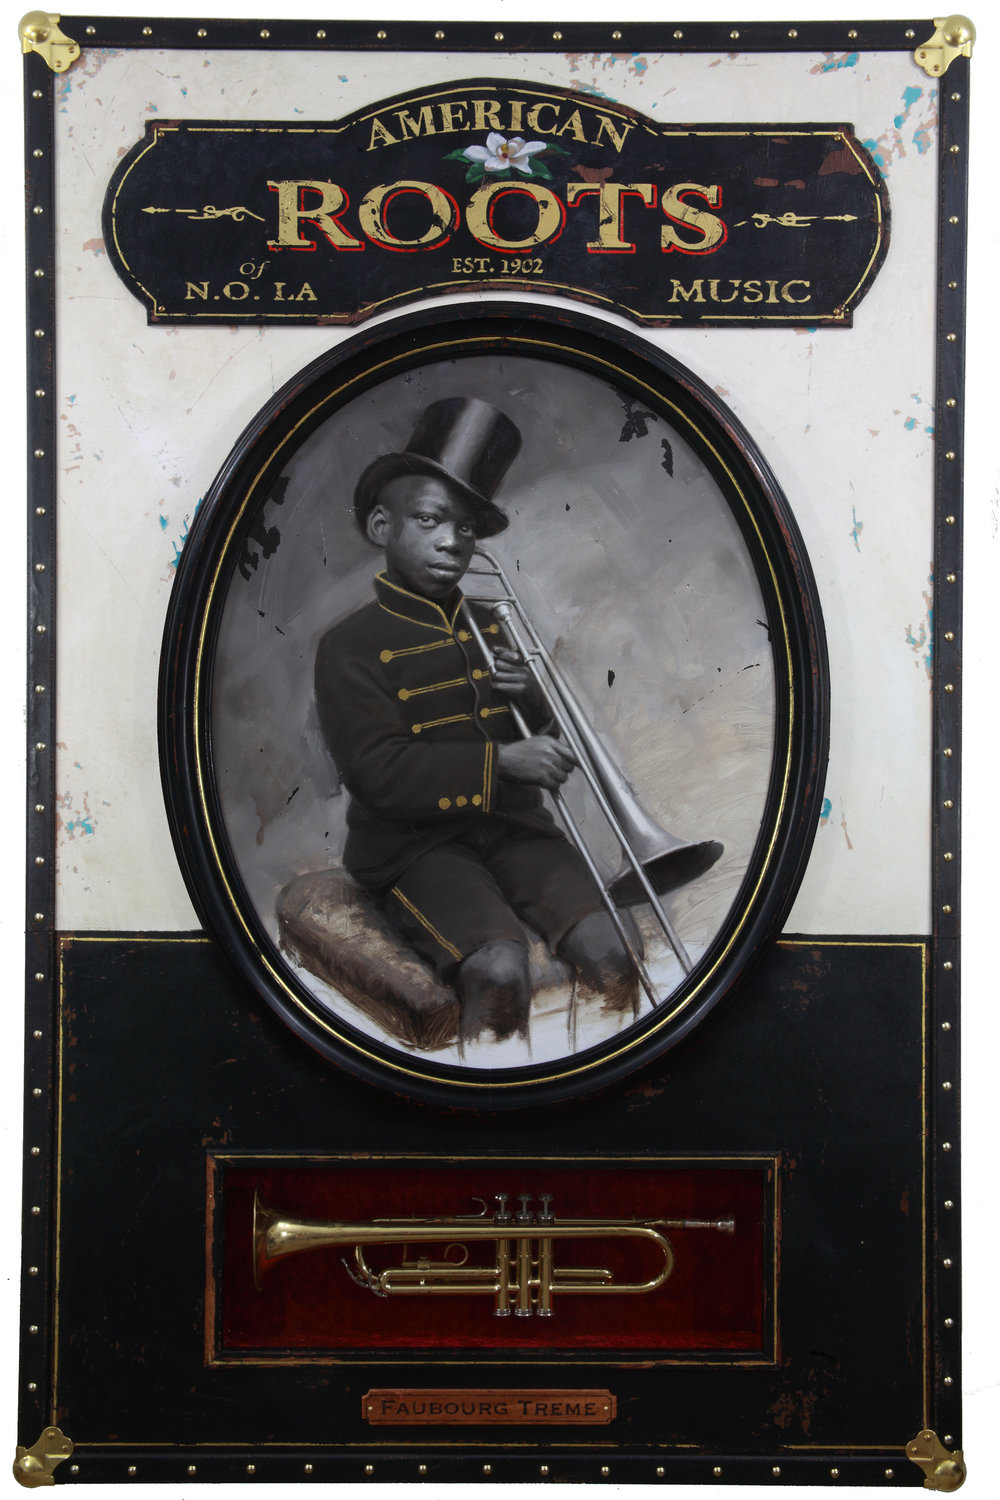 Jules Arthur  |  American Roots Music  |  Portrait painted in oil on wood panel. Constructed wooden box frame, fabric, leather, 23k gold leaf lettering, brass hardware, vintage trumpet  |  42 x 65 x 6 inches or 106 ½ x 165 x 15 ¼ cm